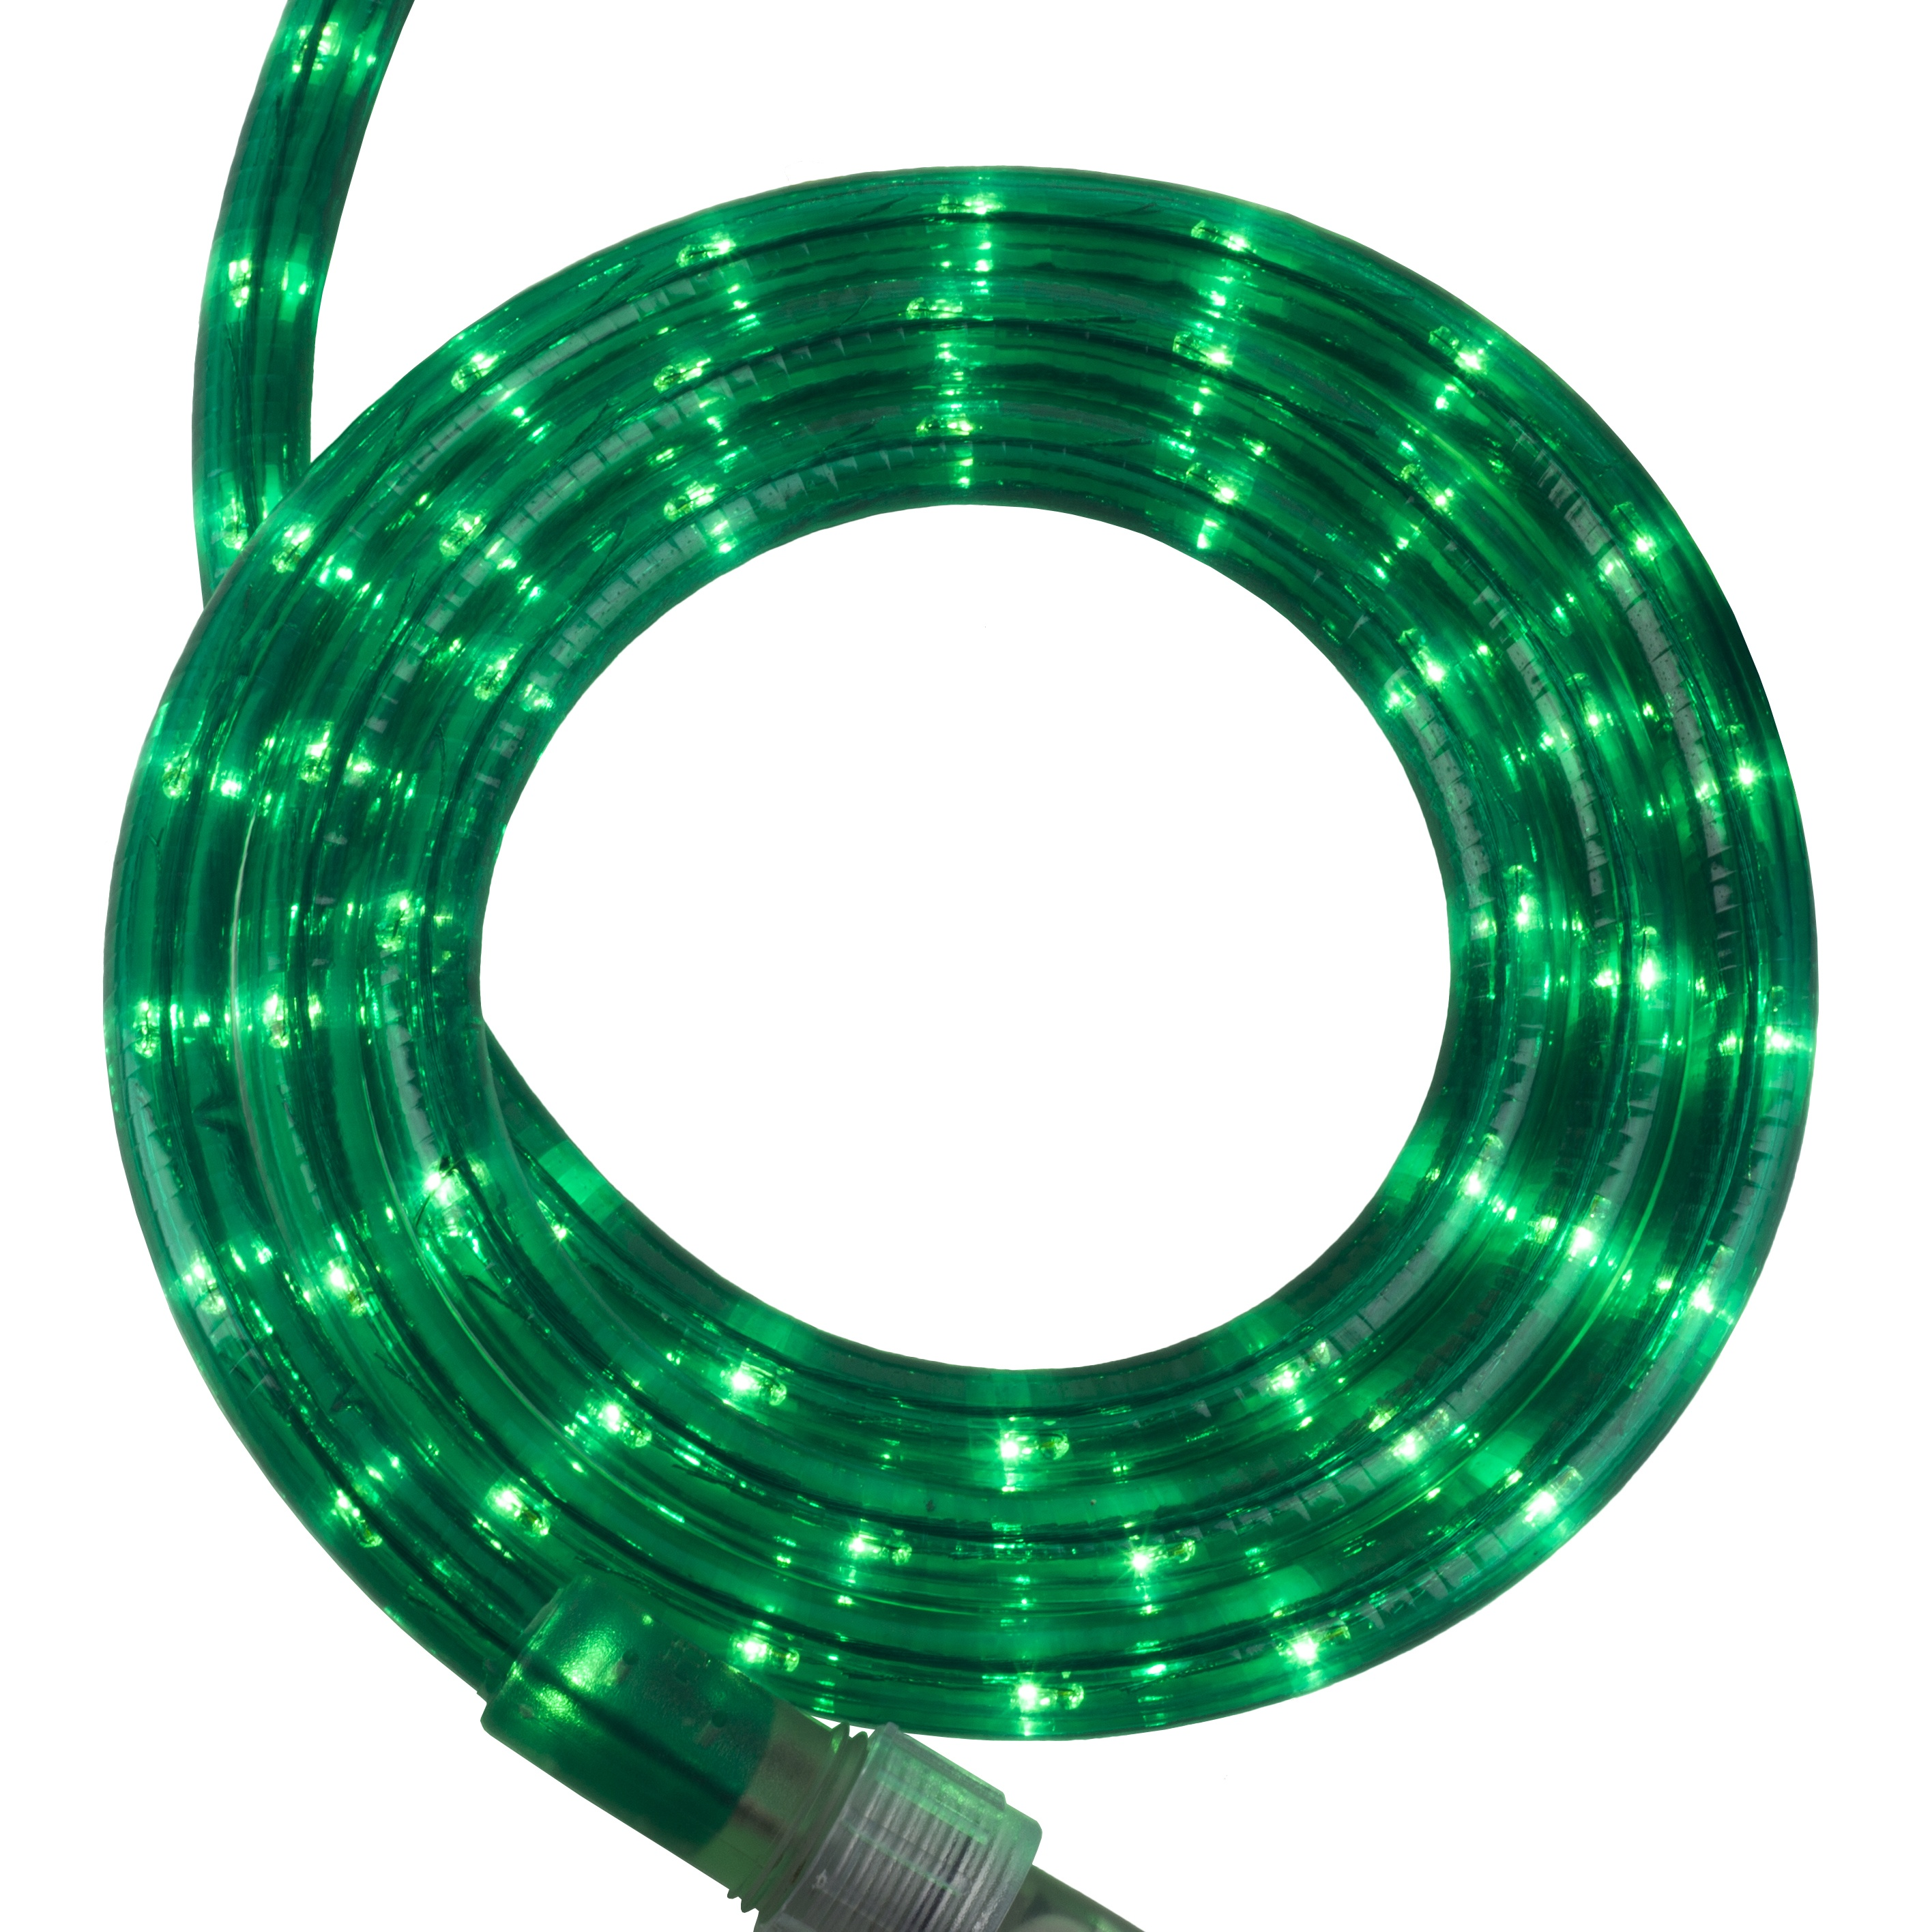 Rope Lighting 18 Green Rope Light 120 Volt